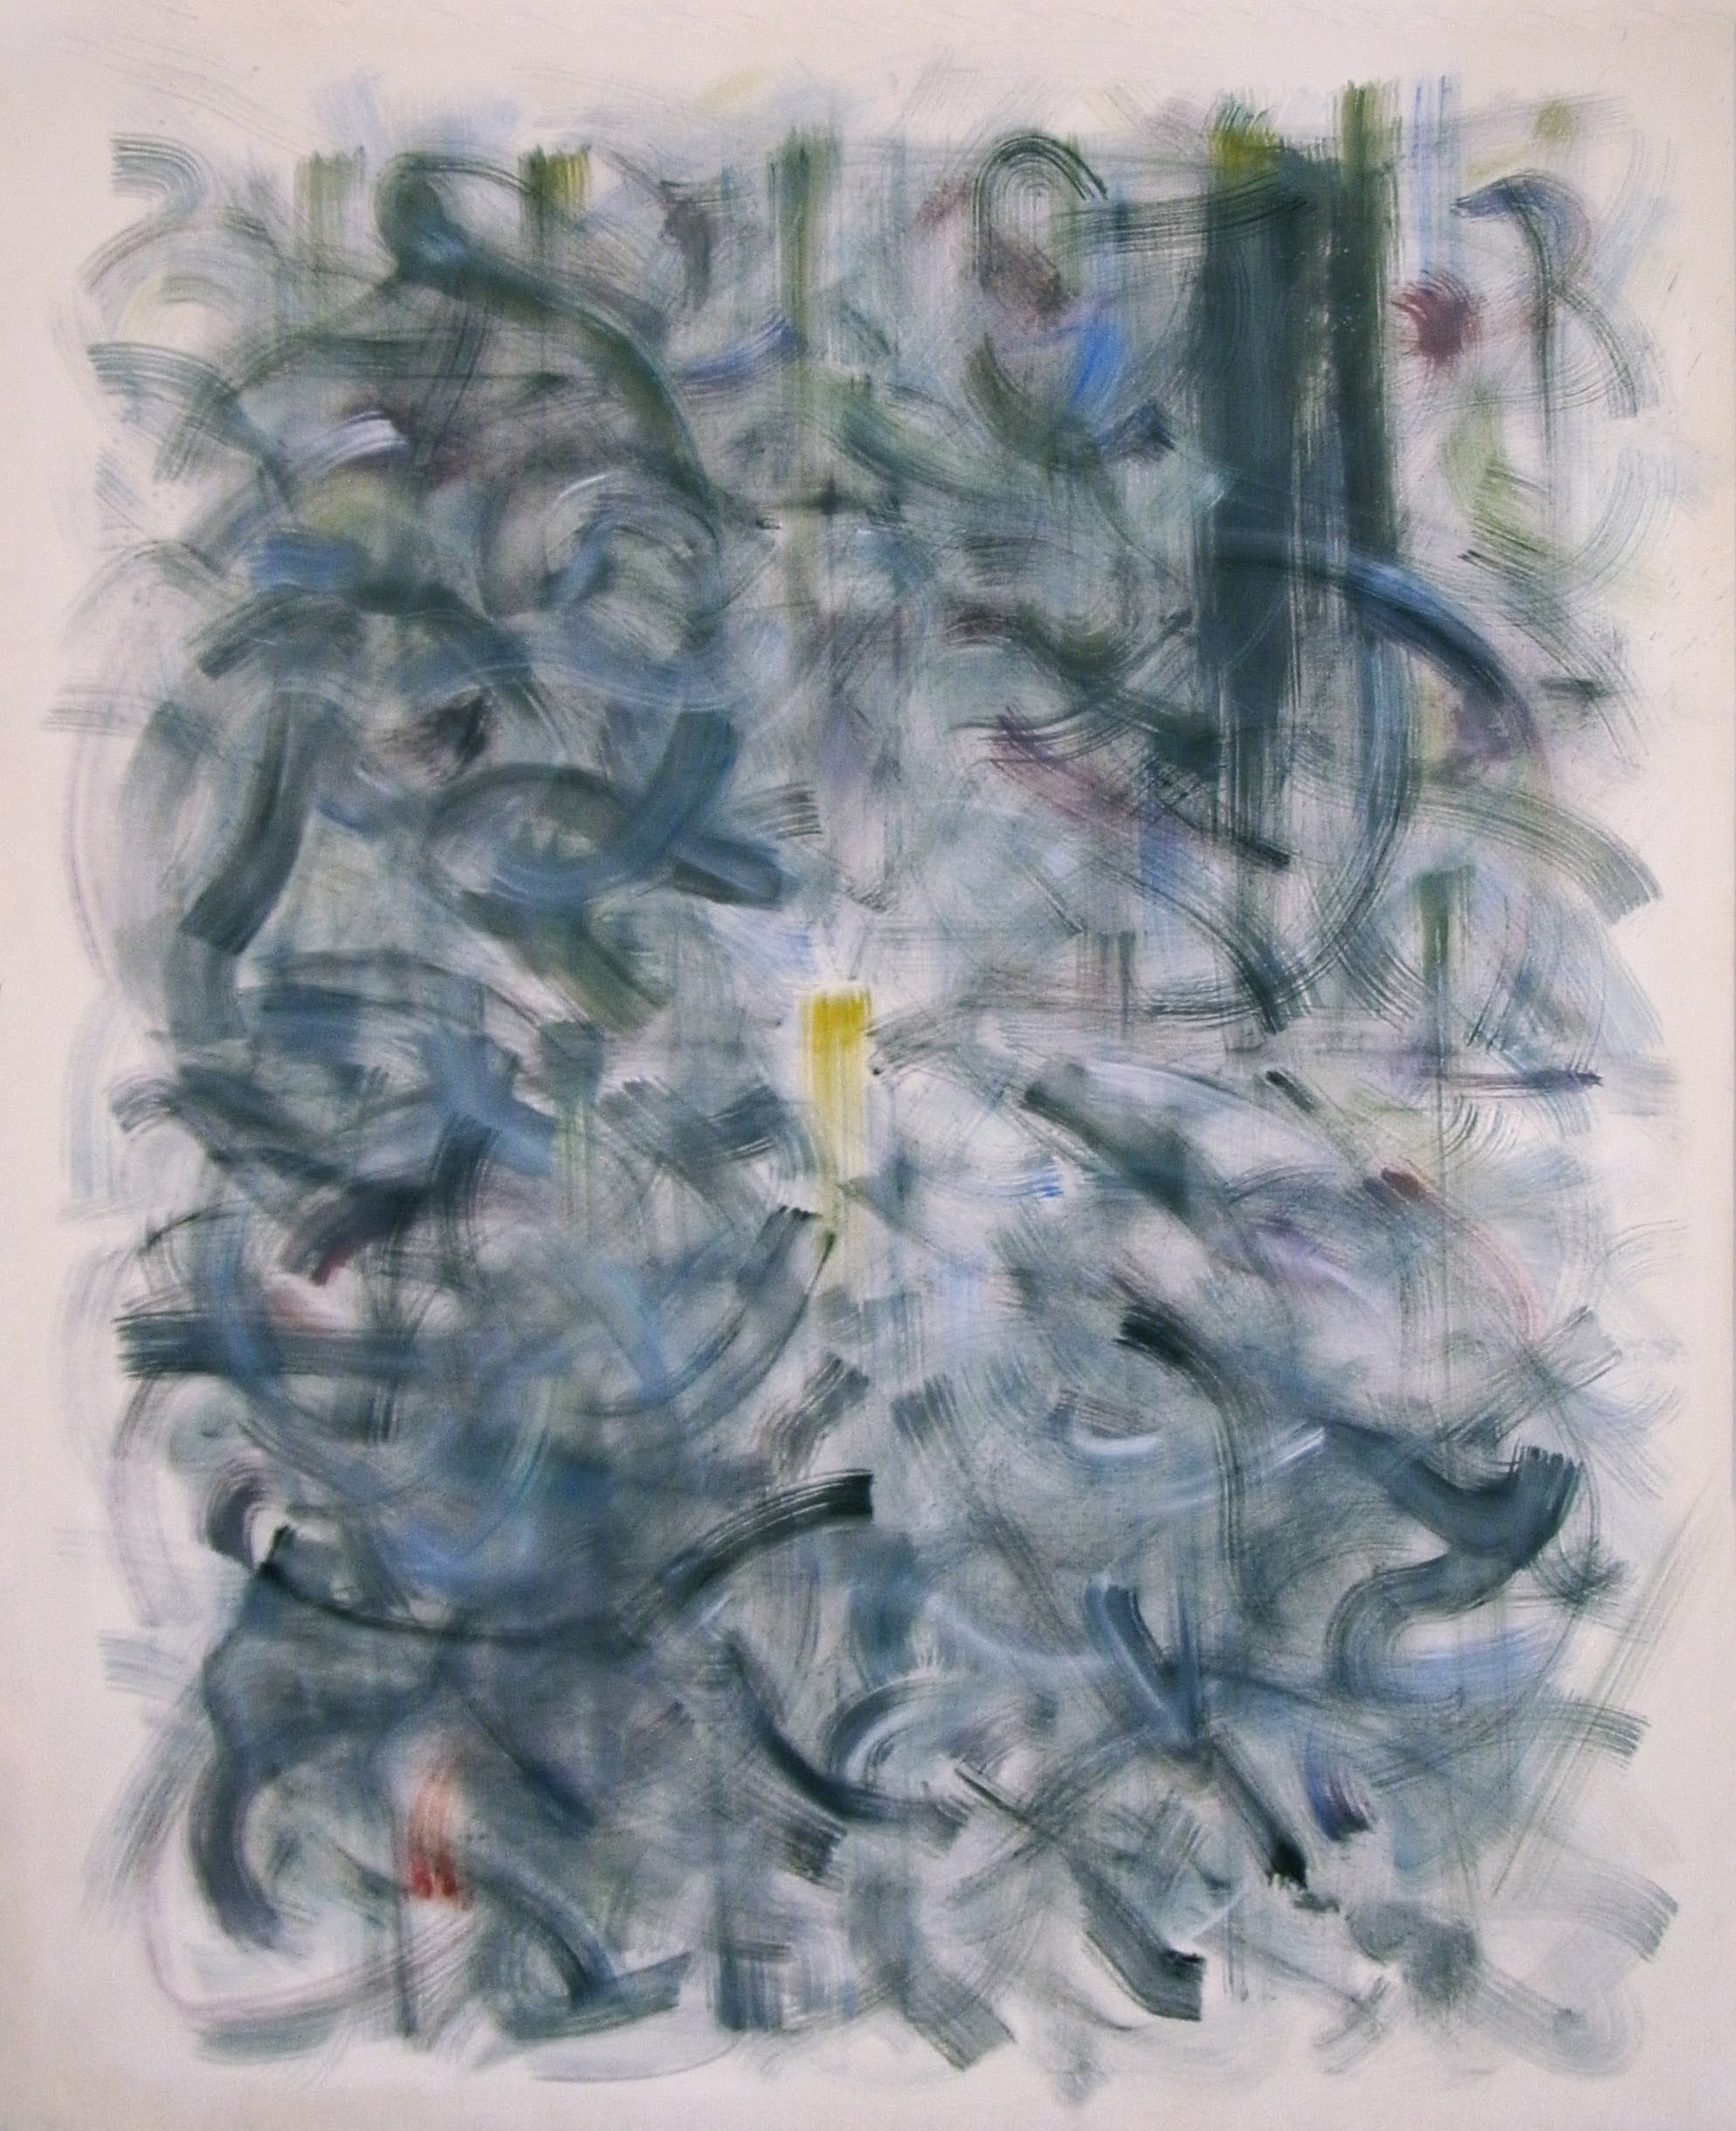 Meditative Structure - MS-I.010 – Letting Go, Oil on Canvas - (early beginnings of meditative structures - 2011)